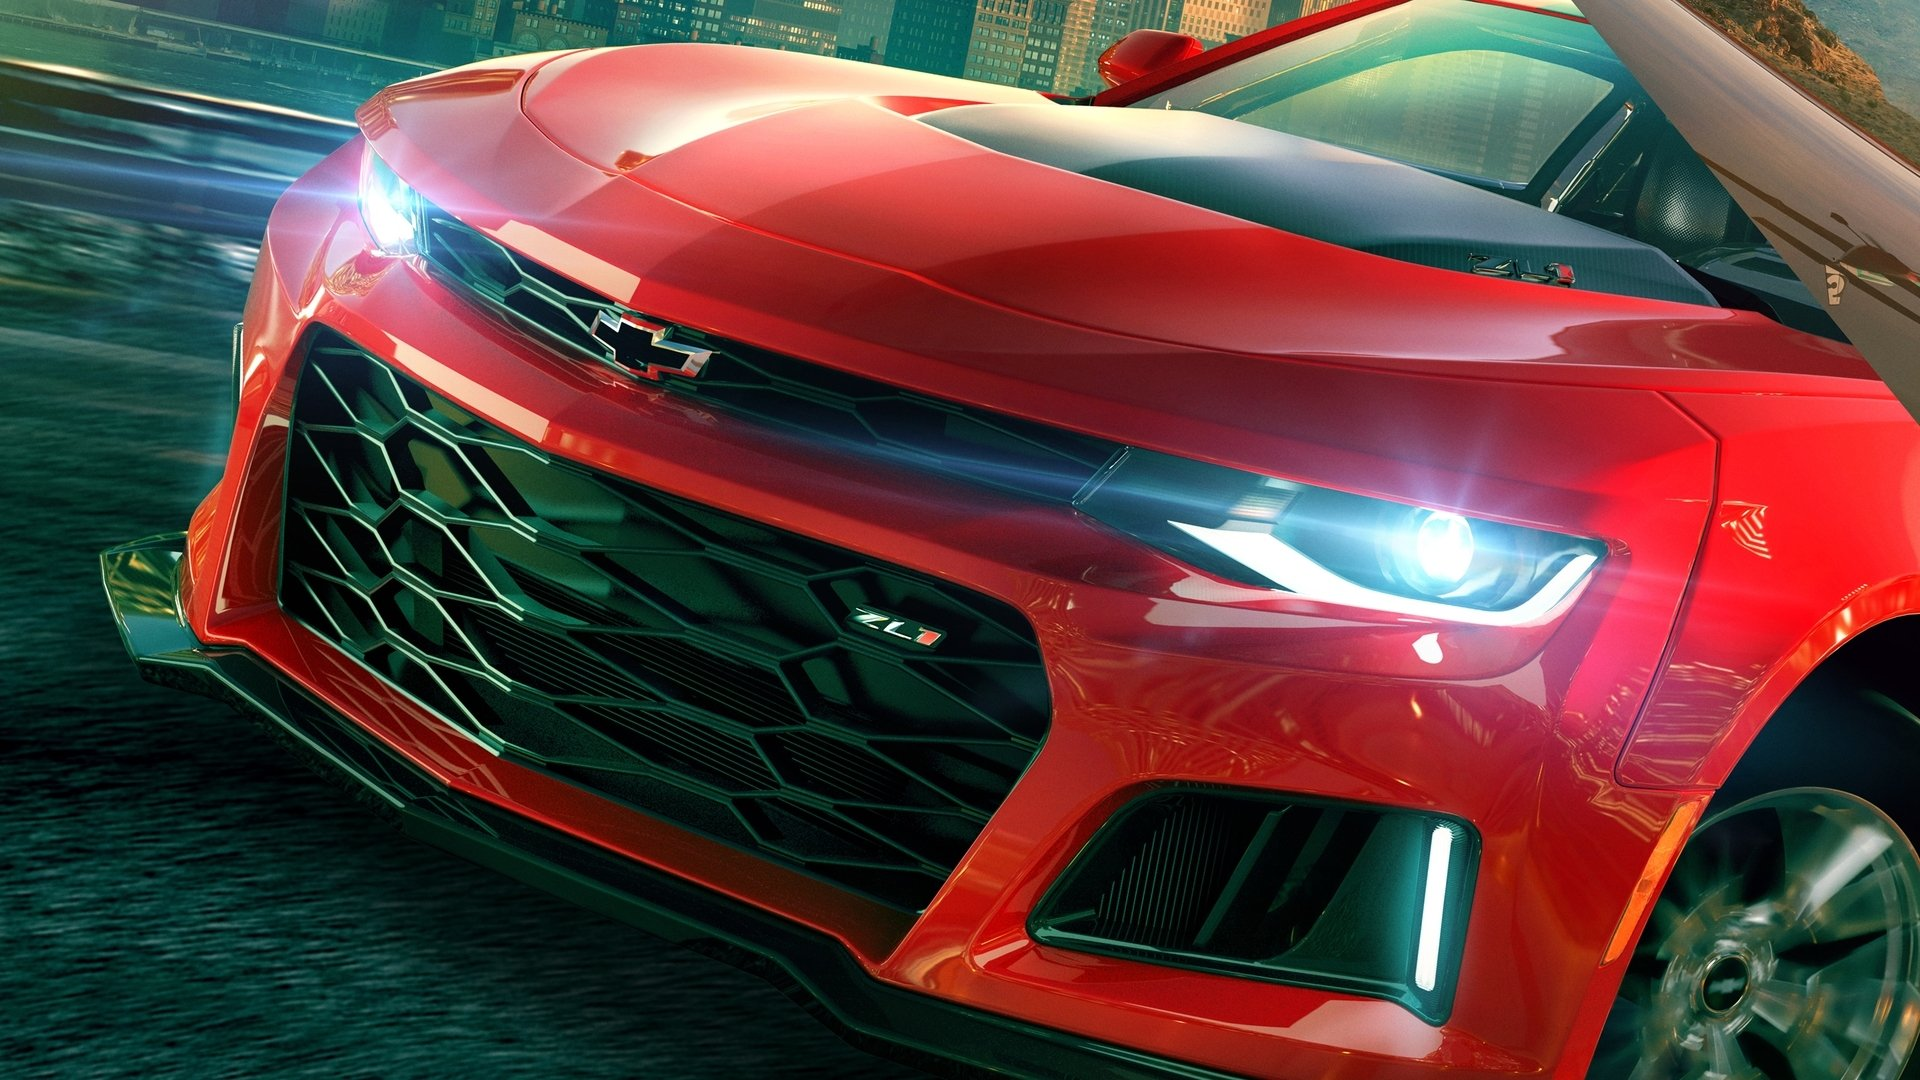 Video Game - The Crew 2  Chevrolet Camaro Chevrolet Red Car Sport Car Car Chevrolet Camaro ZL1 Wallpaper